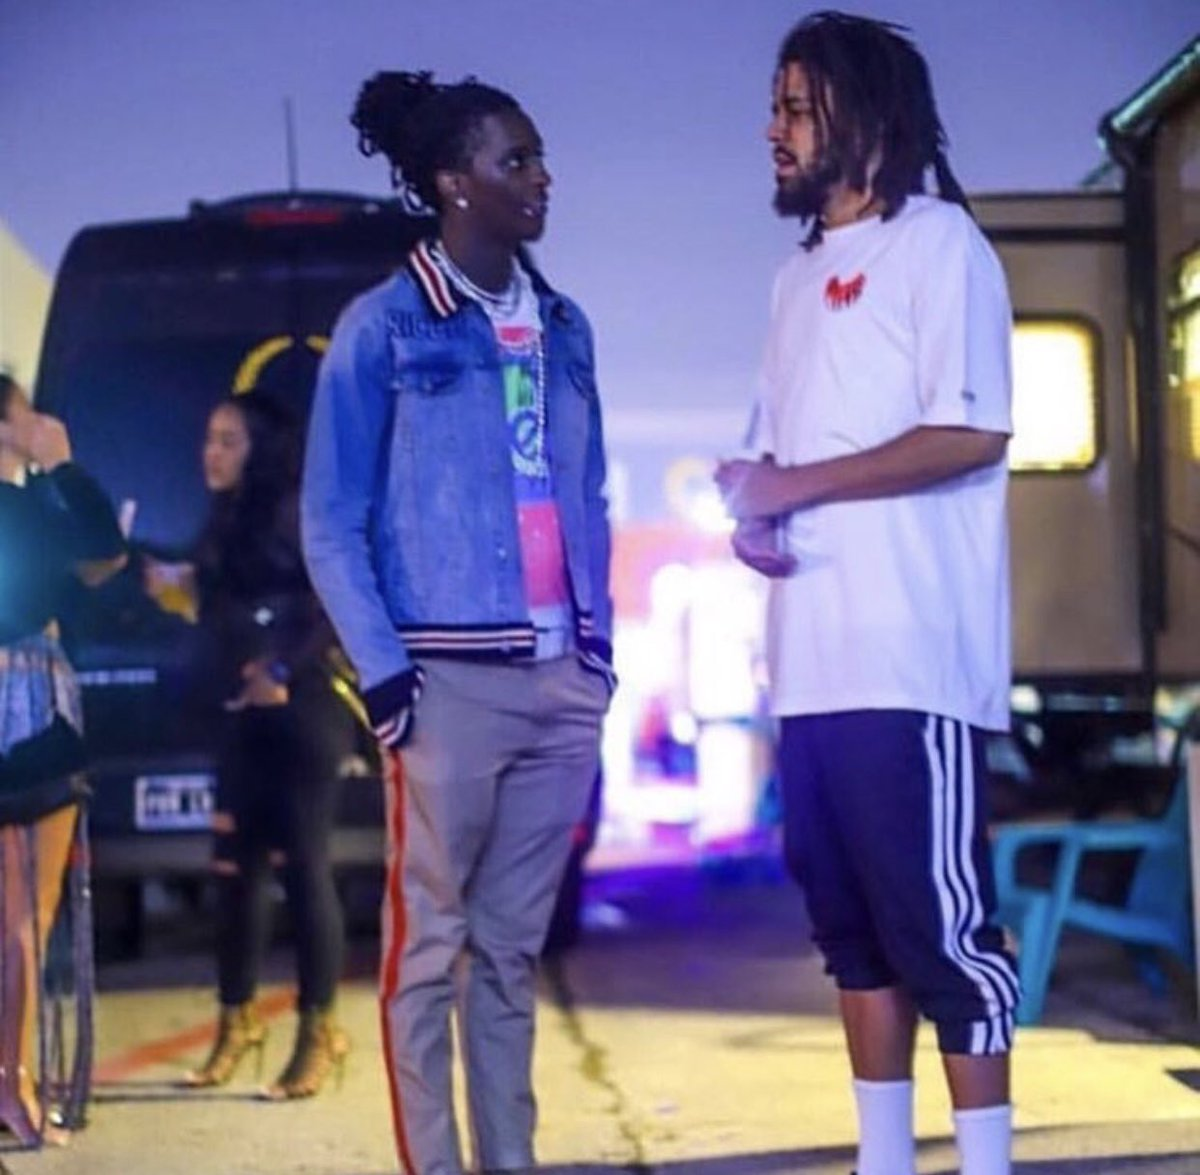 J. Cole To Executive Produce Young Thug's Upcoming Album